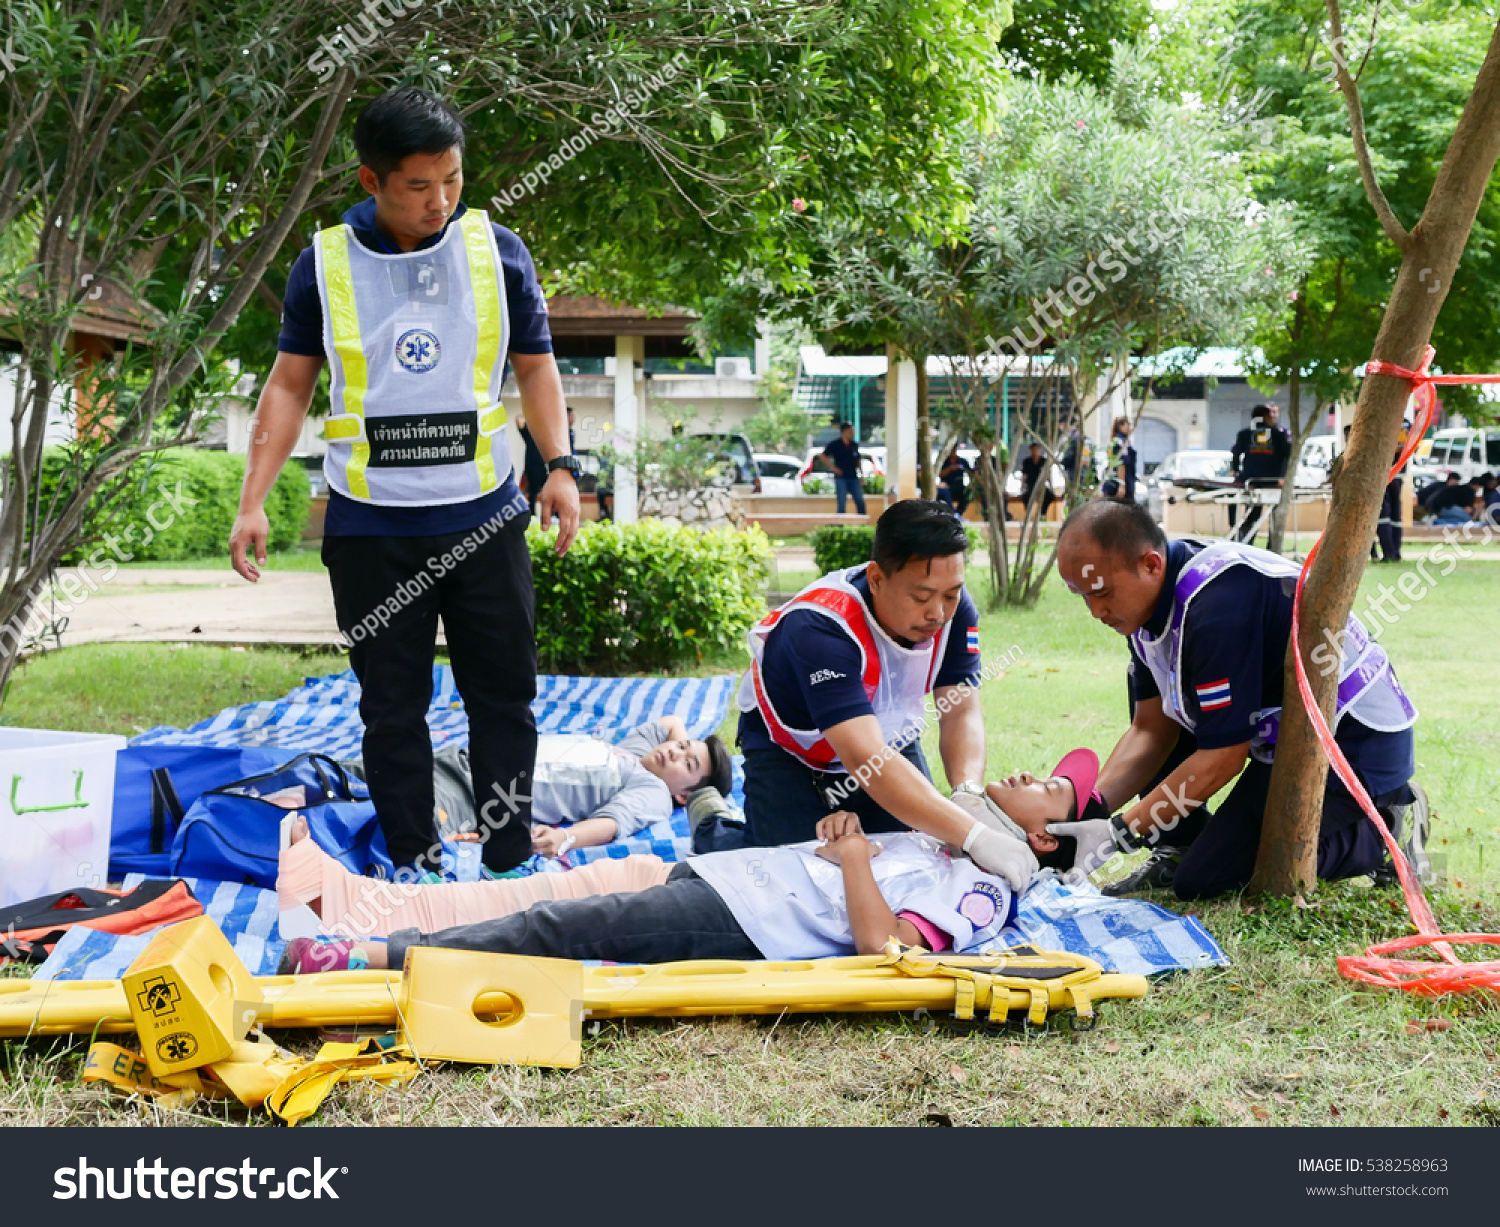 Lampang Thailand- September 16 2016 Emergency medical team practice for saving and packaging trauma patient at park in Lampang Thailand September 16 2016